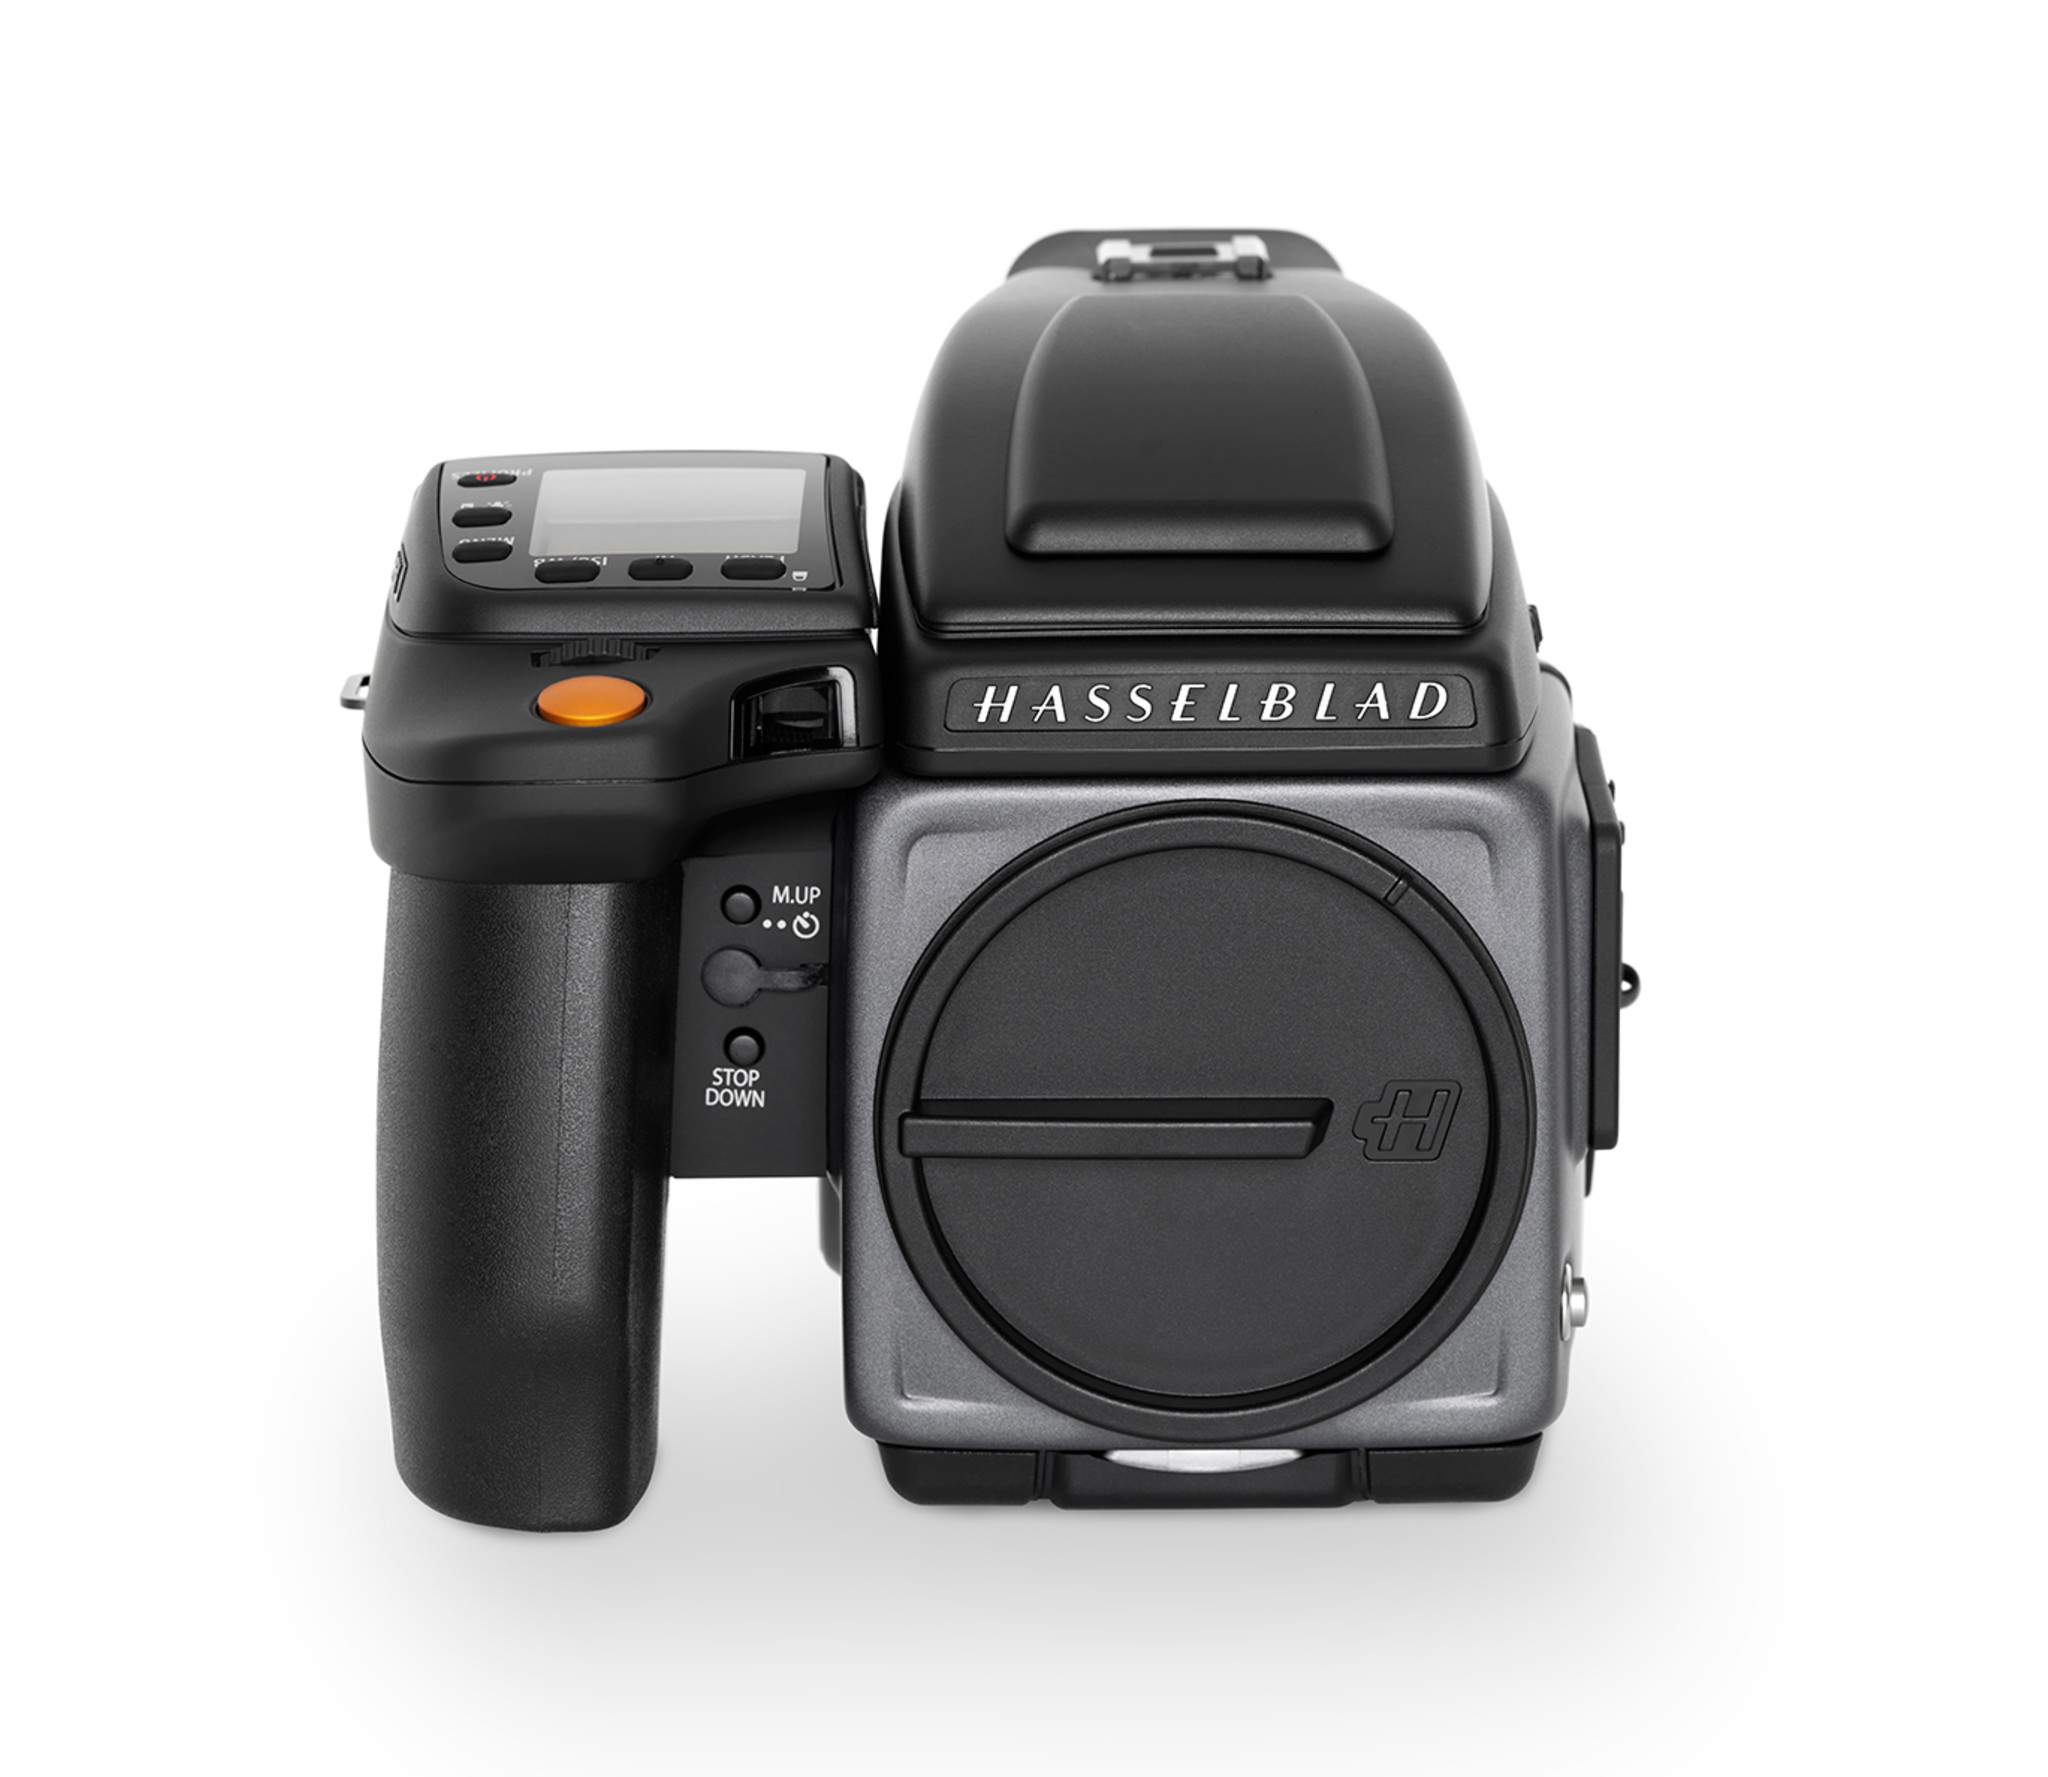 hasselblad lens dating